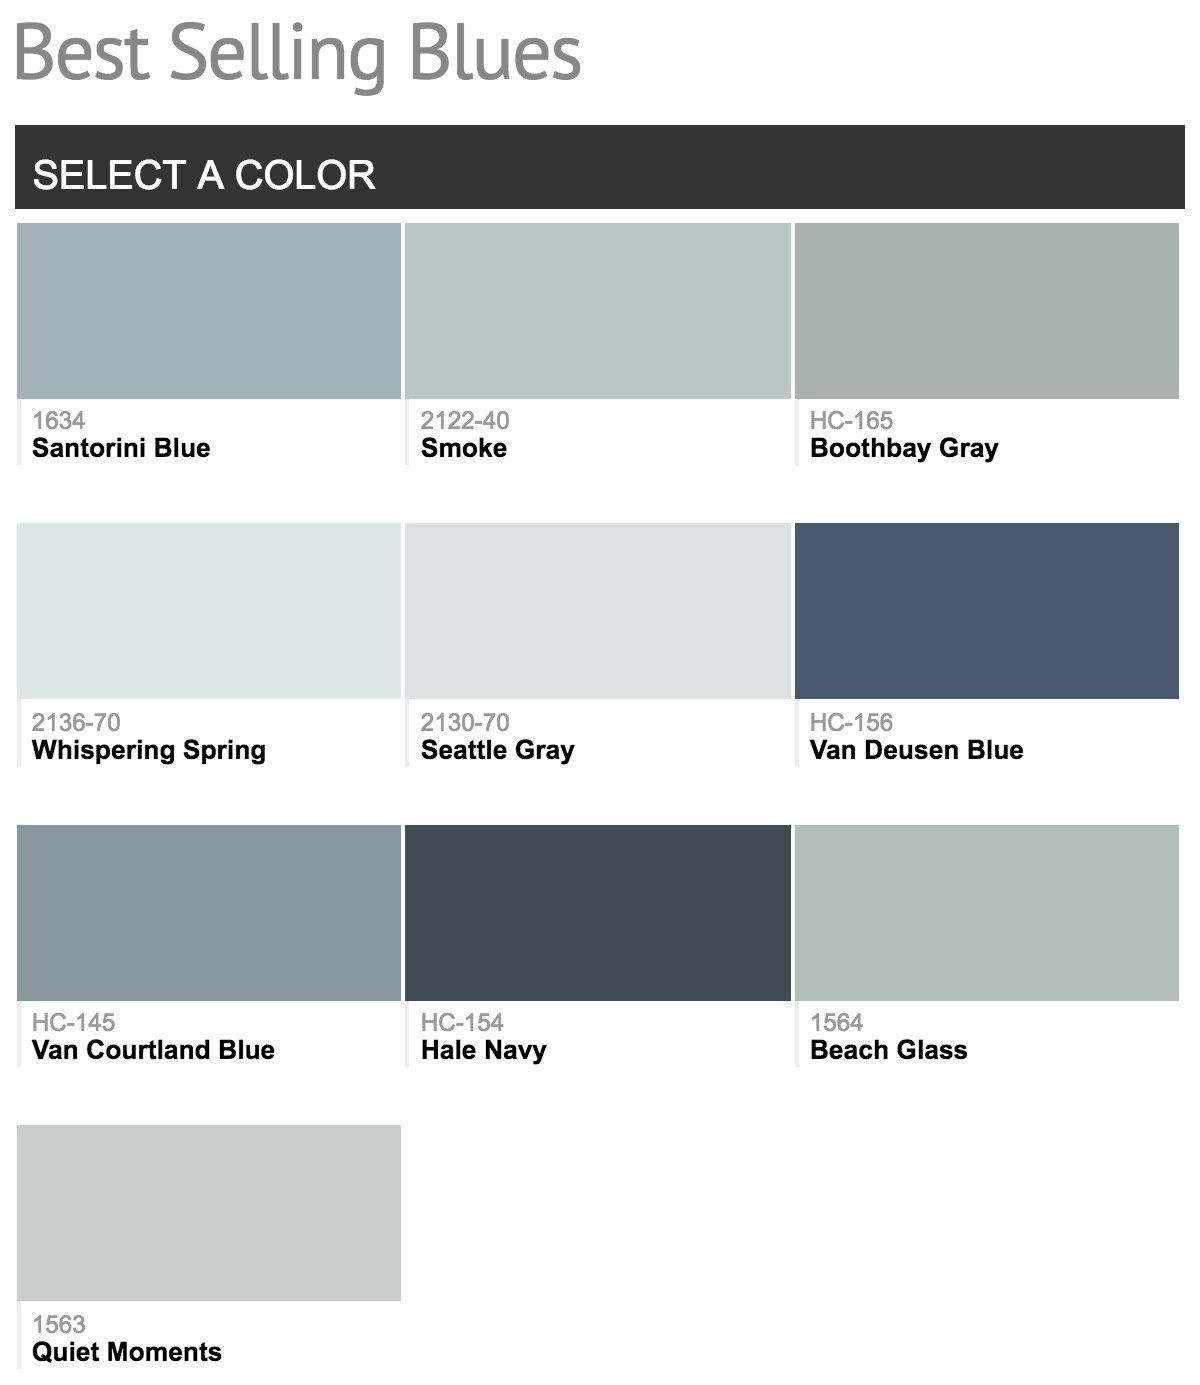 38 Best Paint Color Schemes Celery Green Images On: Best Selling Benjamin Moore Paint Colors